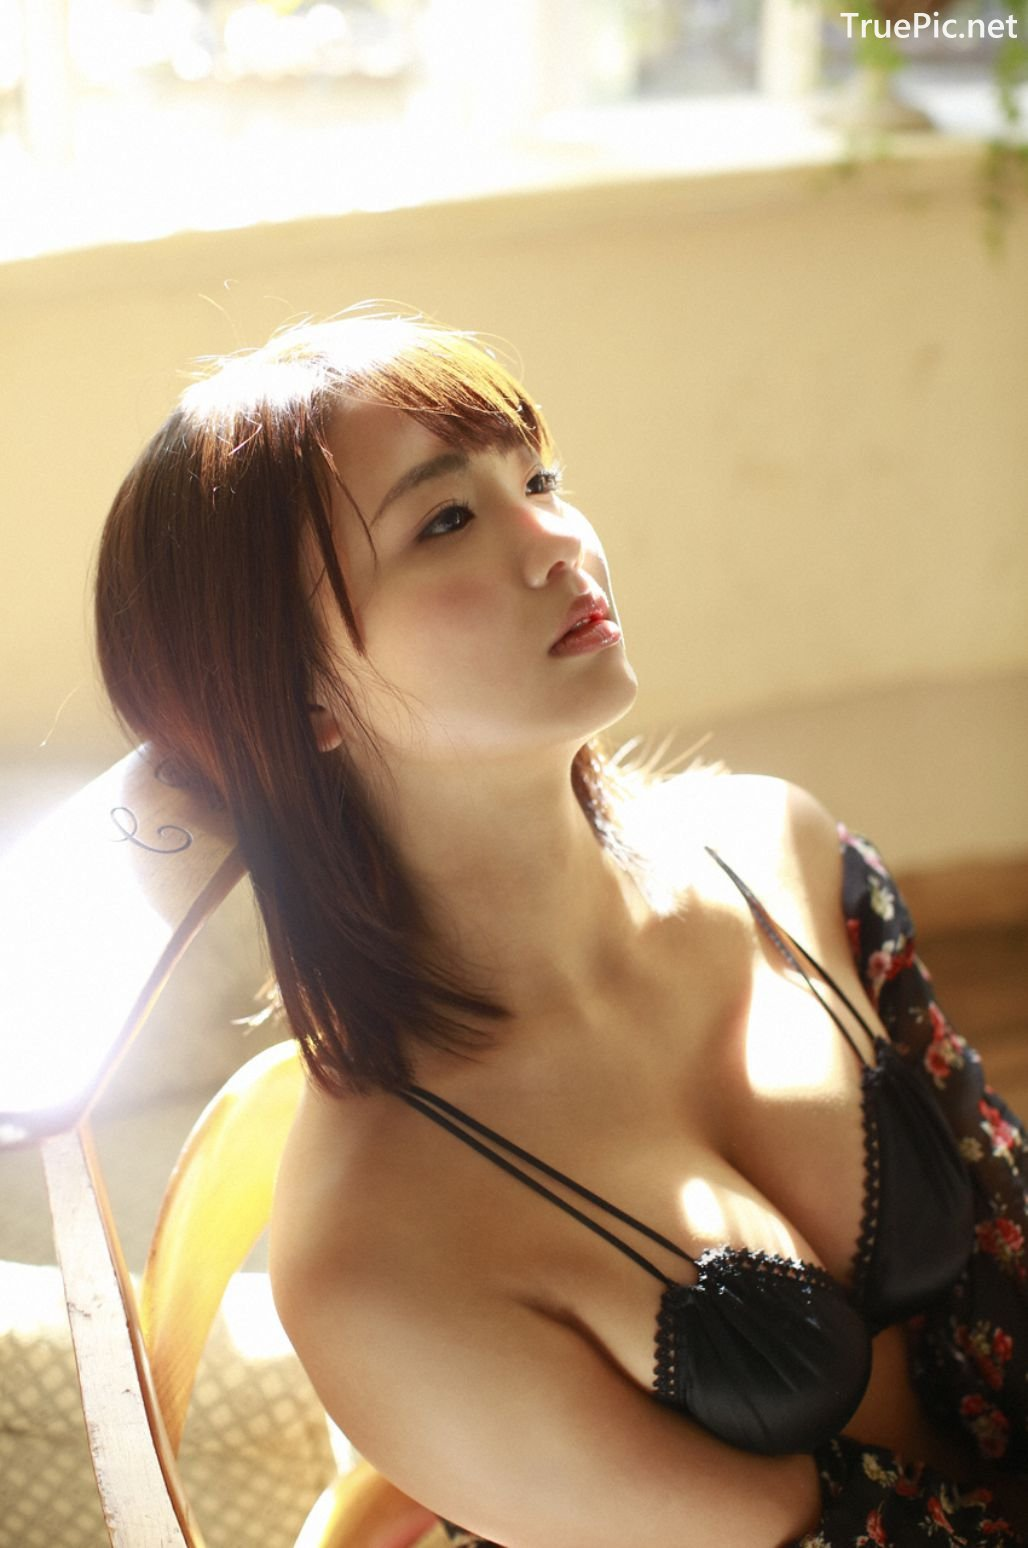 Image-Japanese-Actress-And-Model-Natsumi-Hirajima-Sexy-Lingerie-Queen-TruePic.net- Picture-6